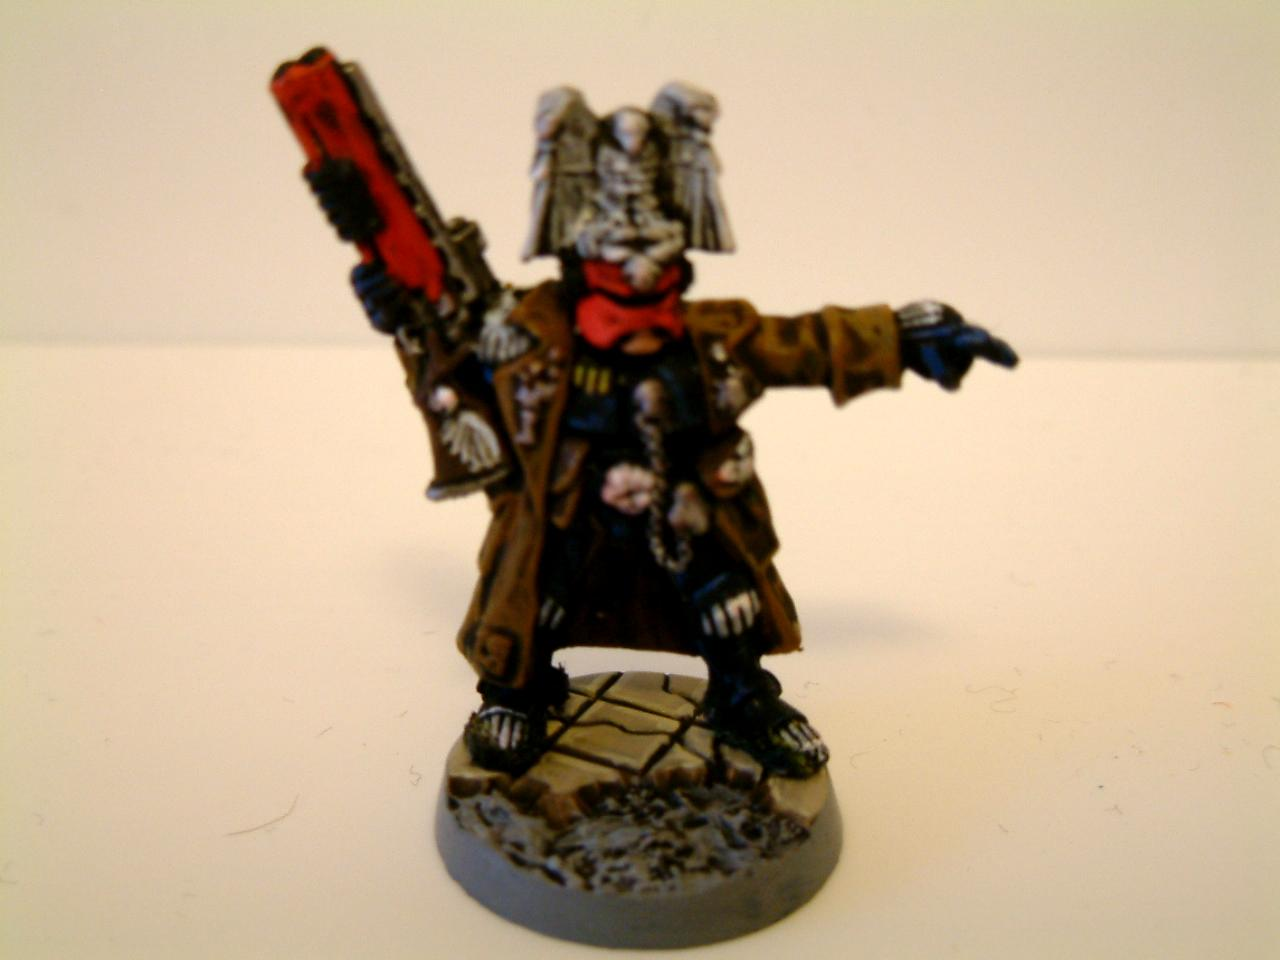 2ed, Adeptus, Adeptus Arbites, Arbite, Arbitor, Arbitrator, Arbitrators, Blurred Photo, Classic, Enforcer, Enforcers, Hunters, Imperial, Inquisitor, Judge, Judges, Necromunda, Out Of Production, Police, Storm Troopers, Warhammer 40,000, Witch, Witchunters